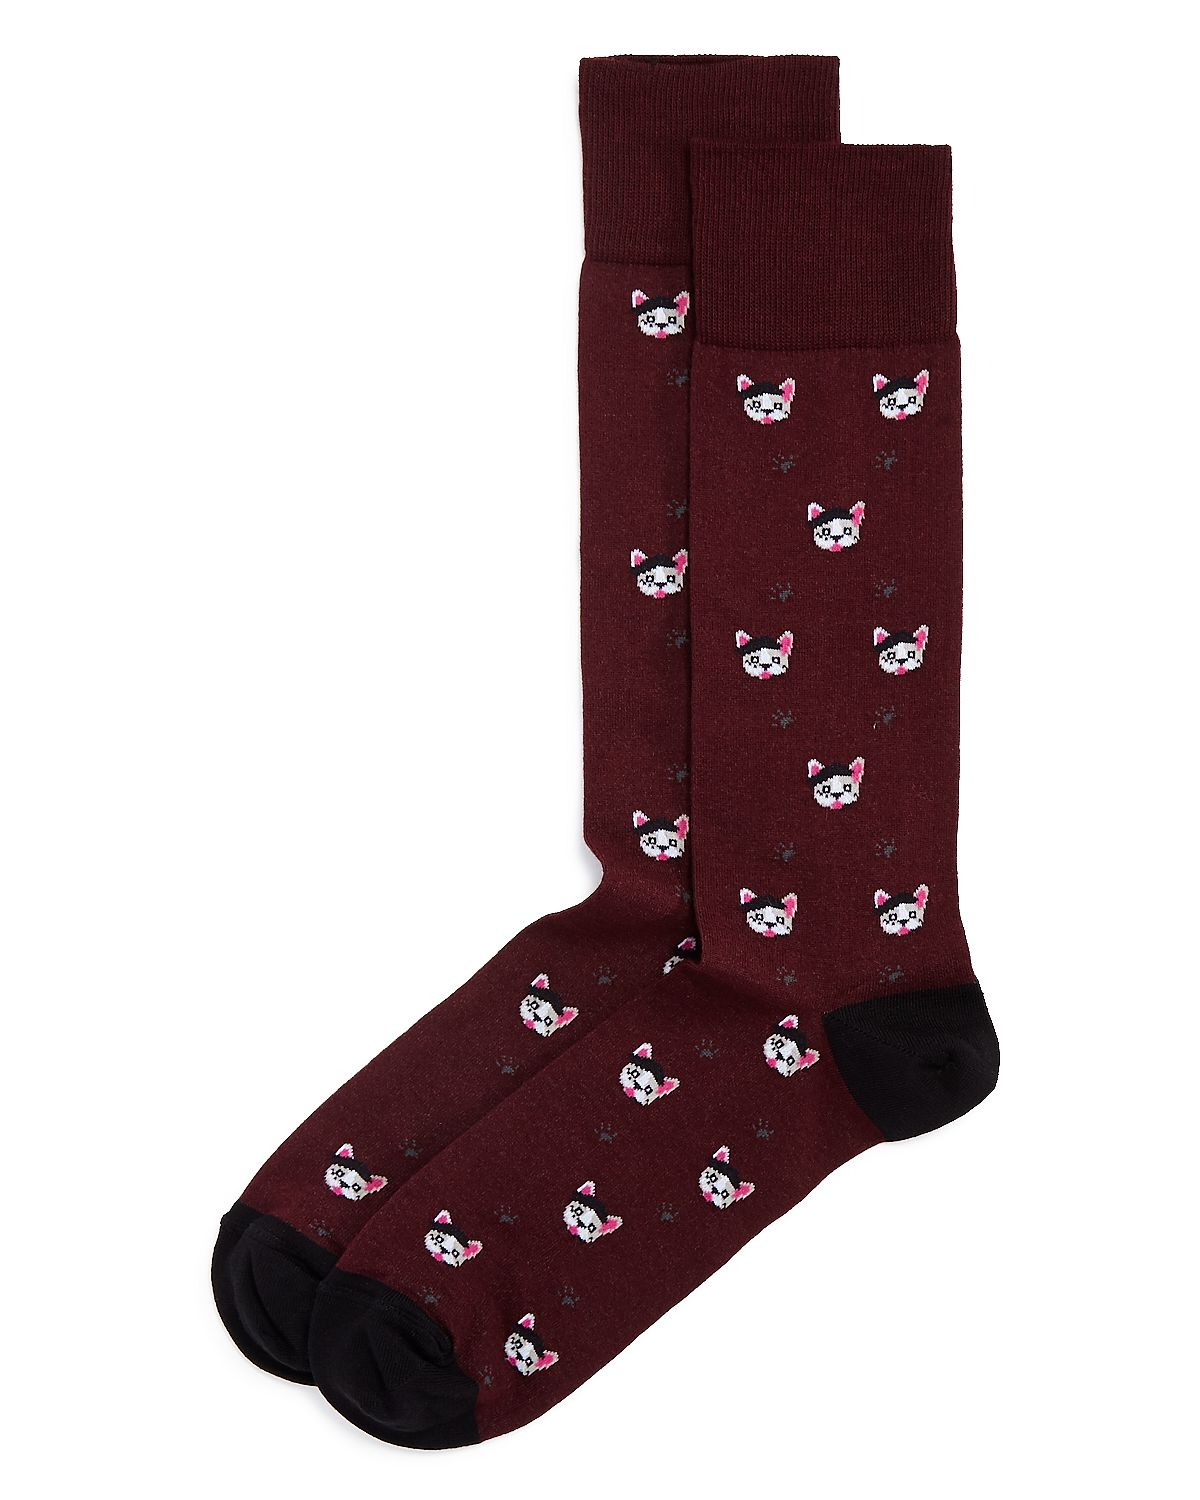 The Men's Store Frenchie Dogs Socks Burgundy